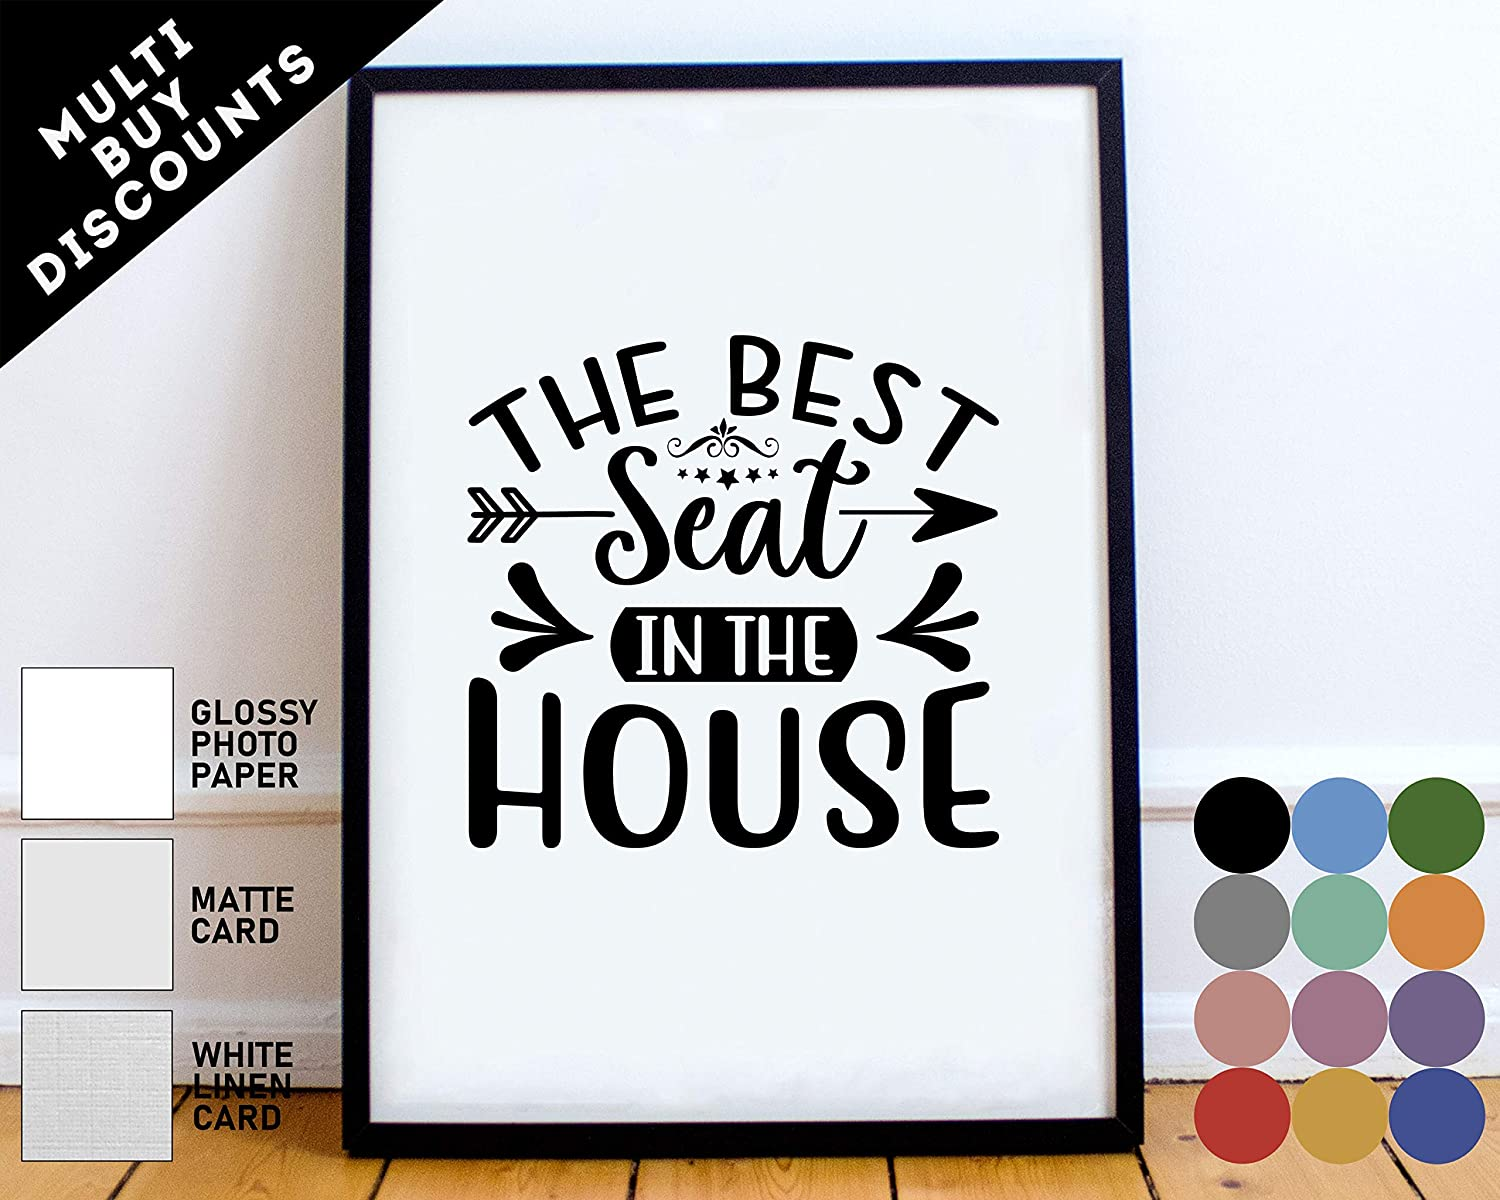 Unframed Bathroom Art Print The Best Seat In The House Bathroom Poster Bathroom Signs Funny Bathroom Artwork Bathroom Quote Print Bathroom Humor